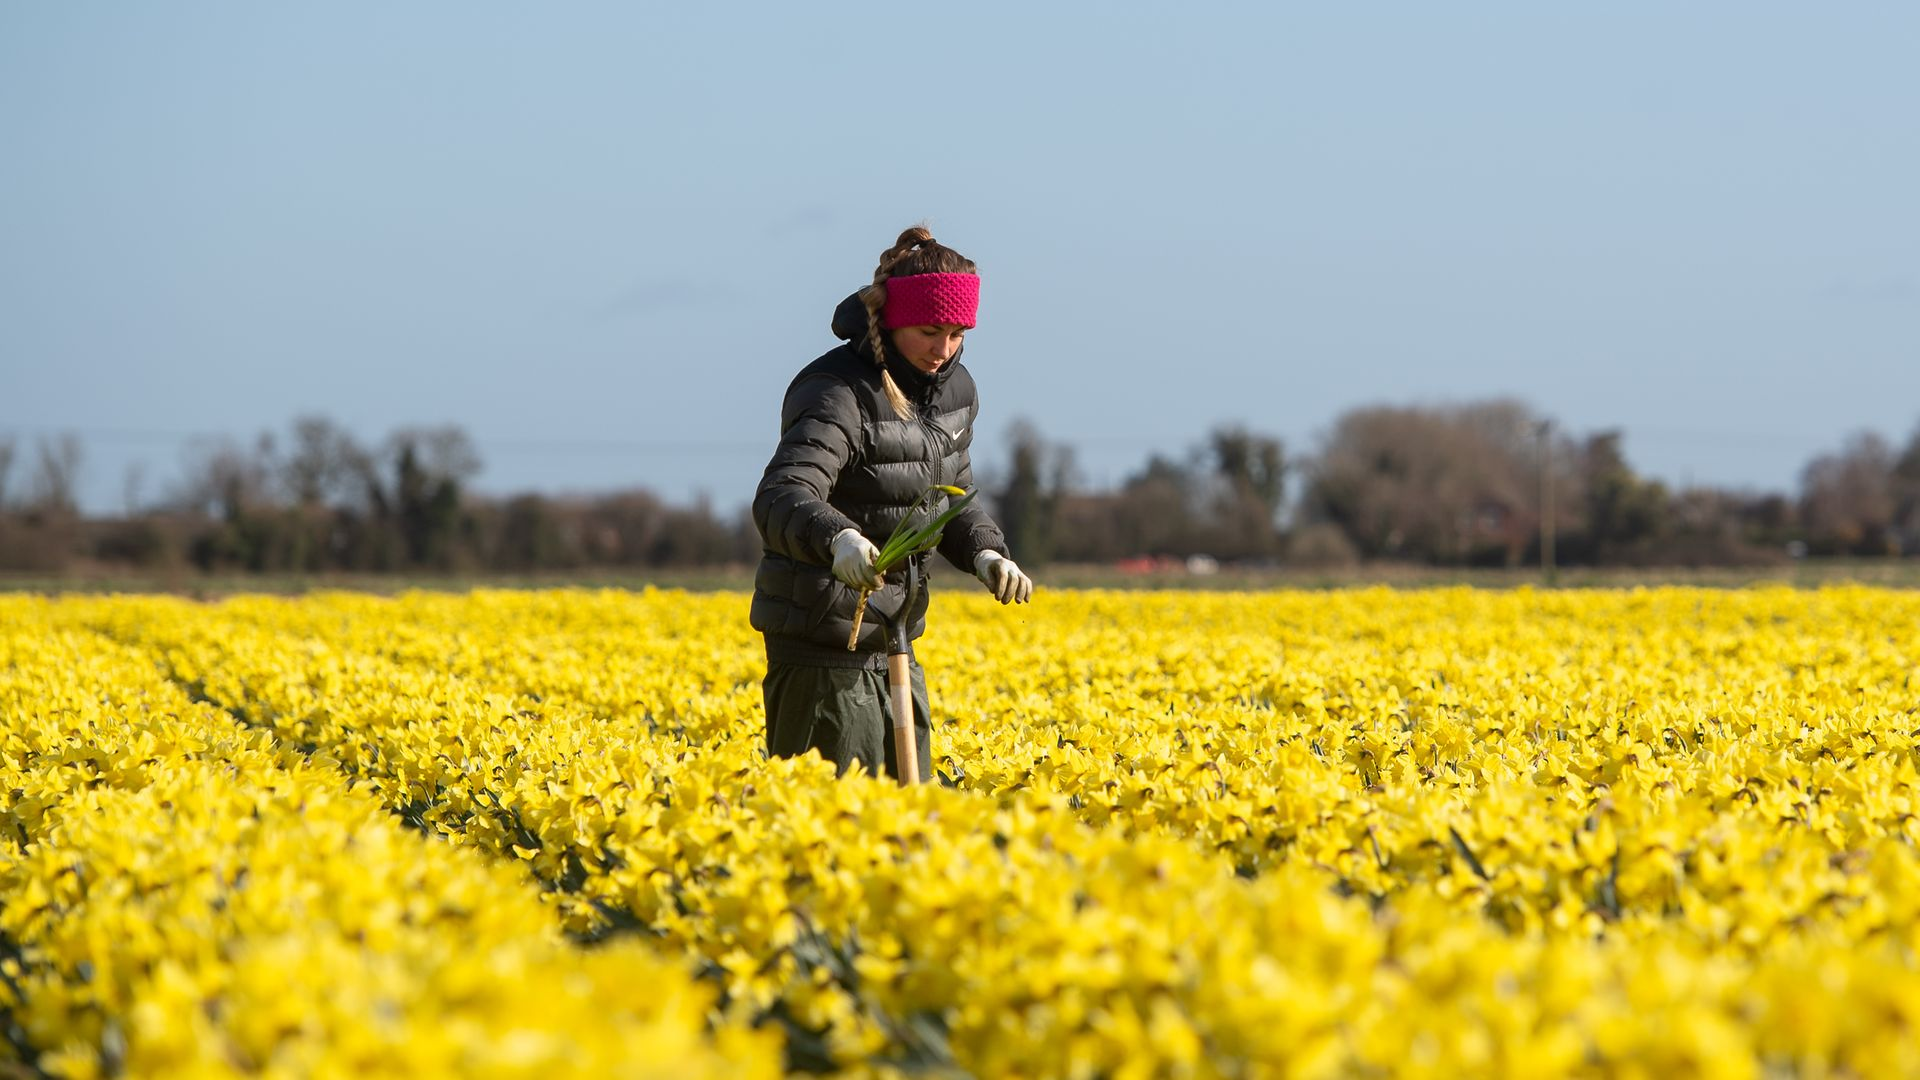 A worker makes her way along rows of daffodils, removing any rogue varieties, at Taylors Bulbs in Holbeach, Lincolnshire. - Credit: PA